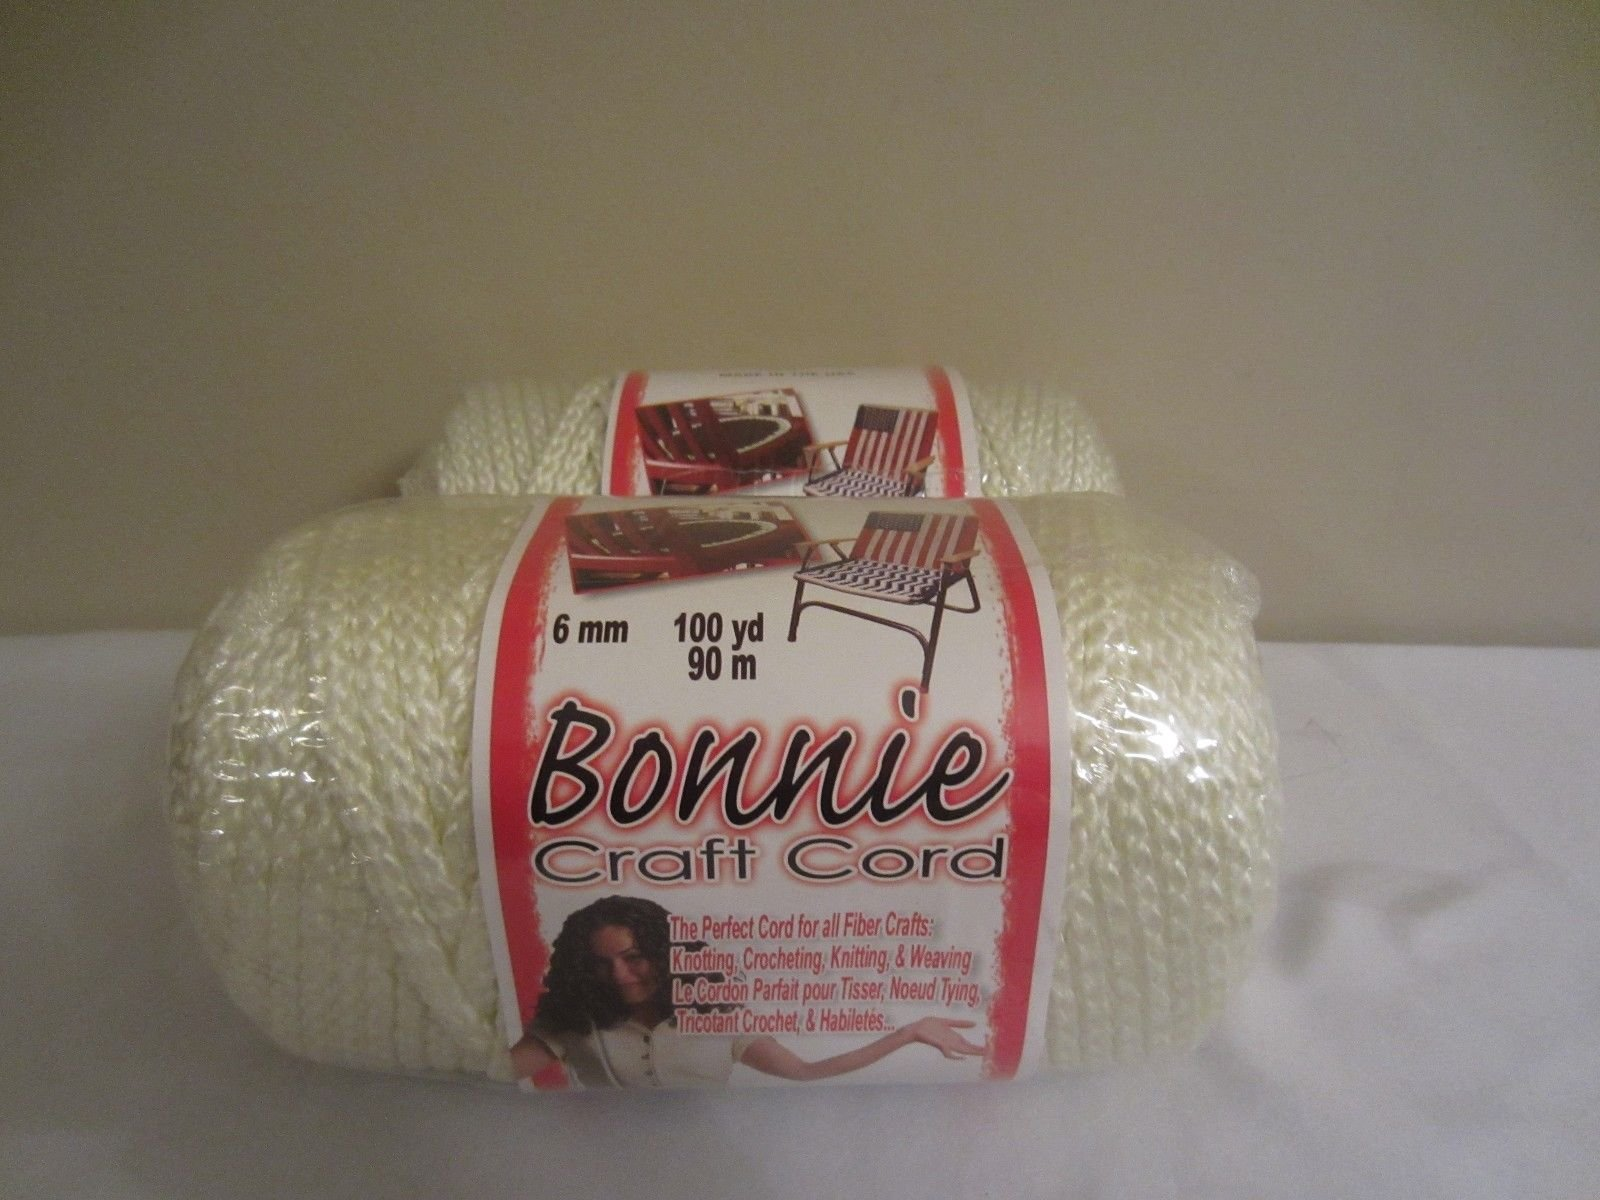 Bonnie Macrame Craft Cord 6mm X 100yd-Ivory